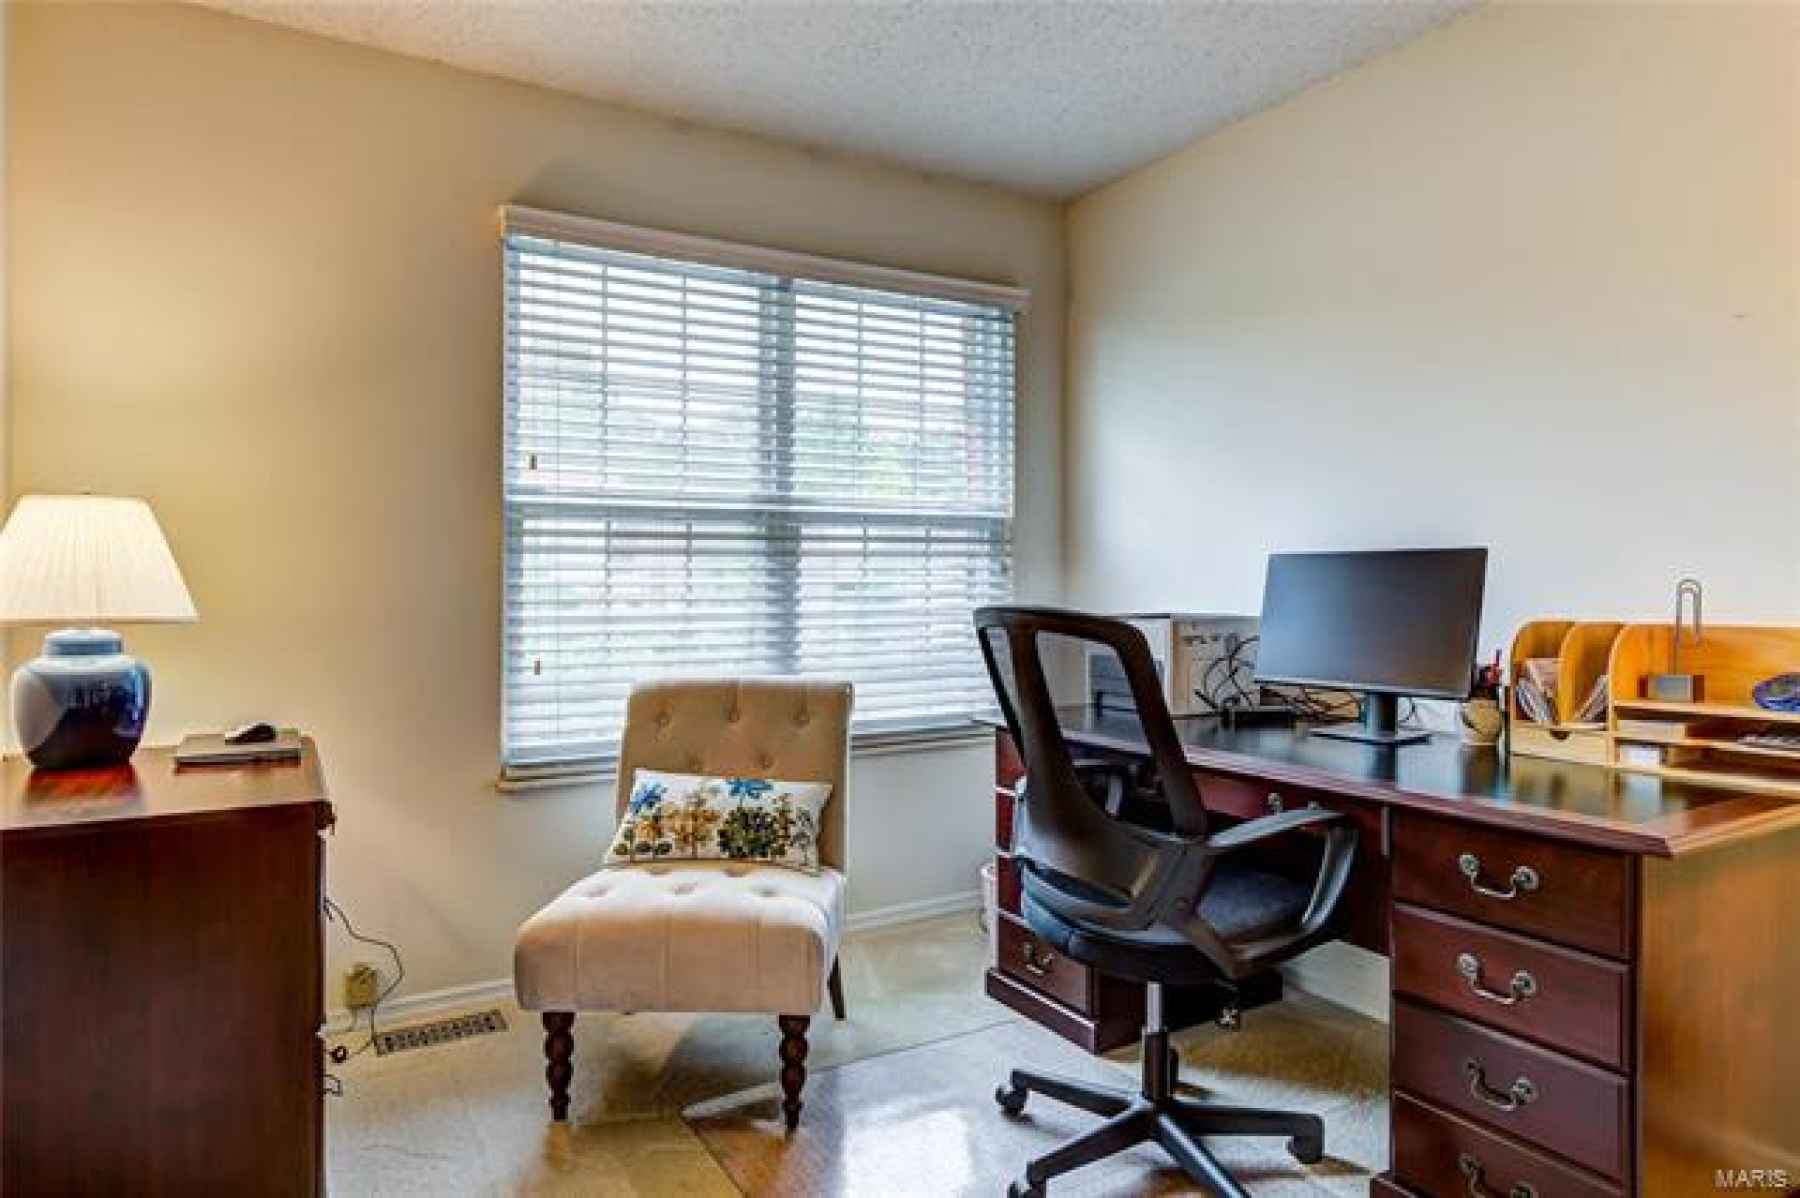 3rd bedroom currently used as office